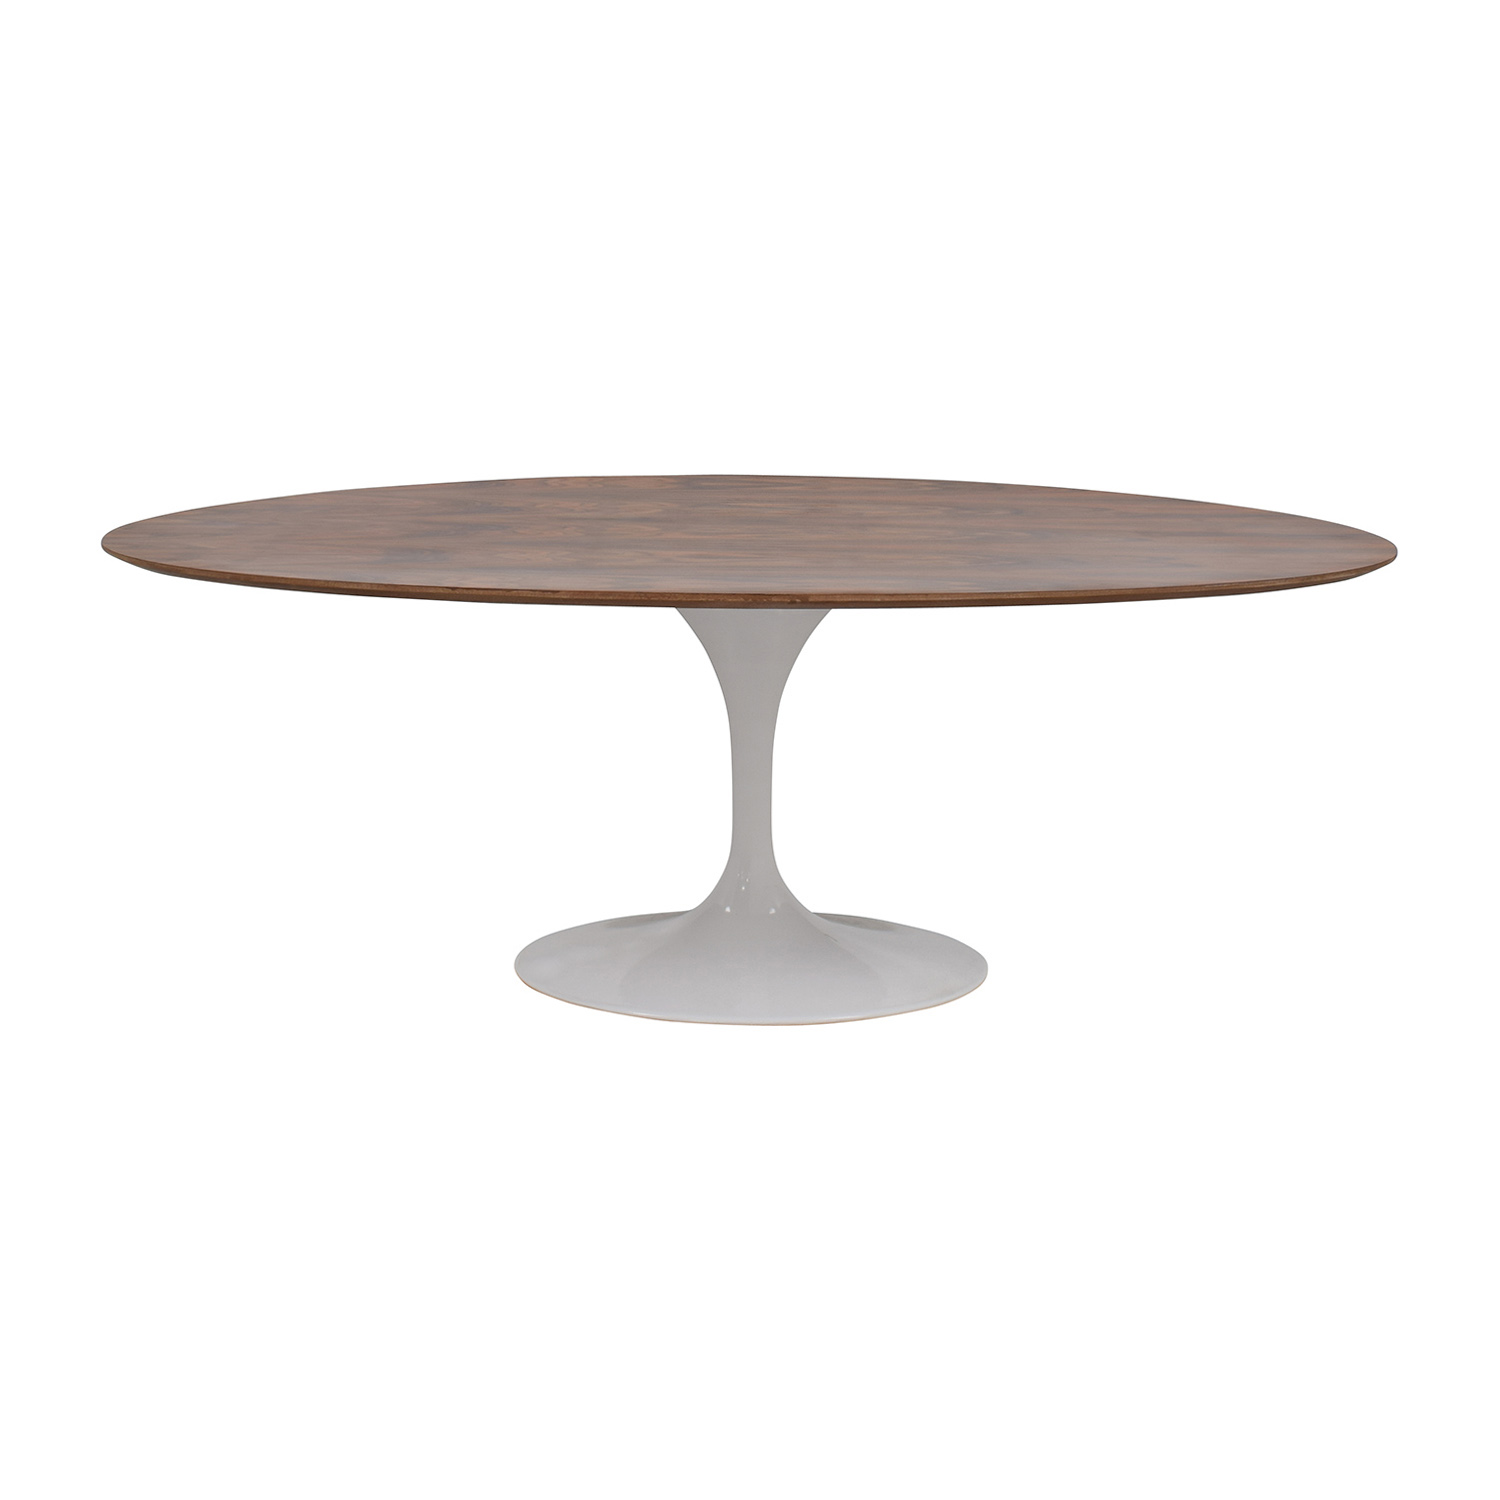 buy InMod InMod Saarinen Oval Pedestal Dining table online